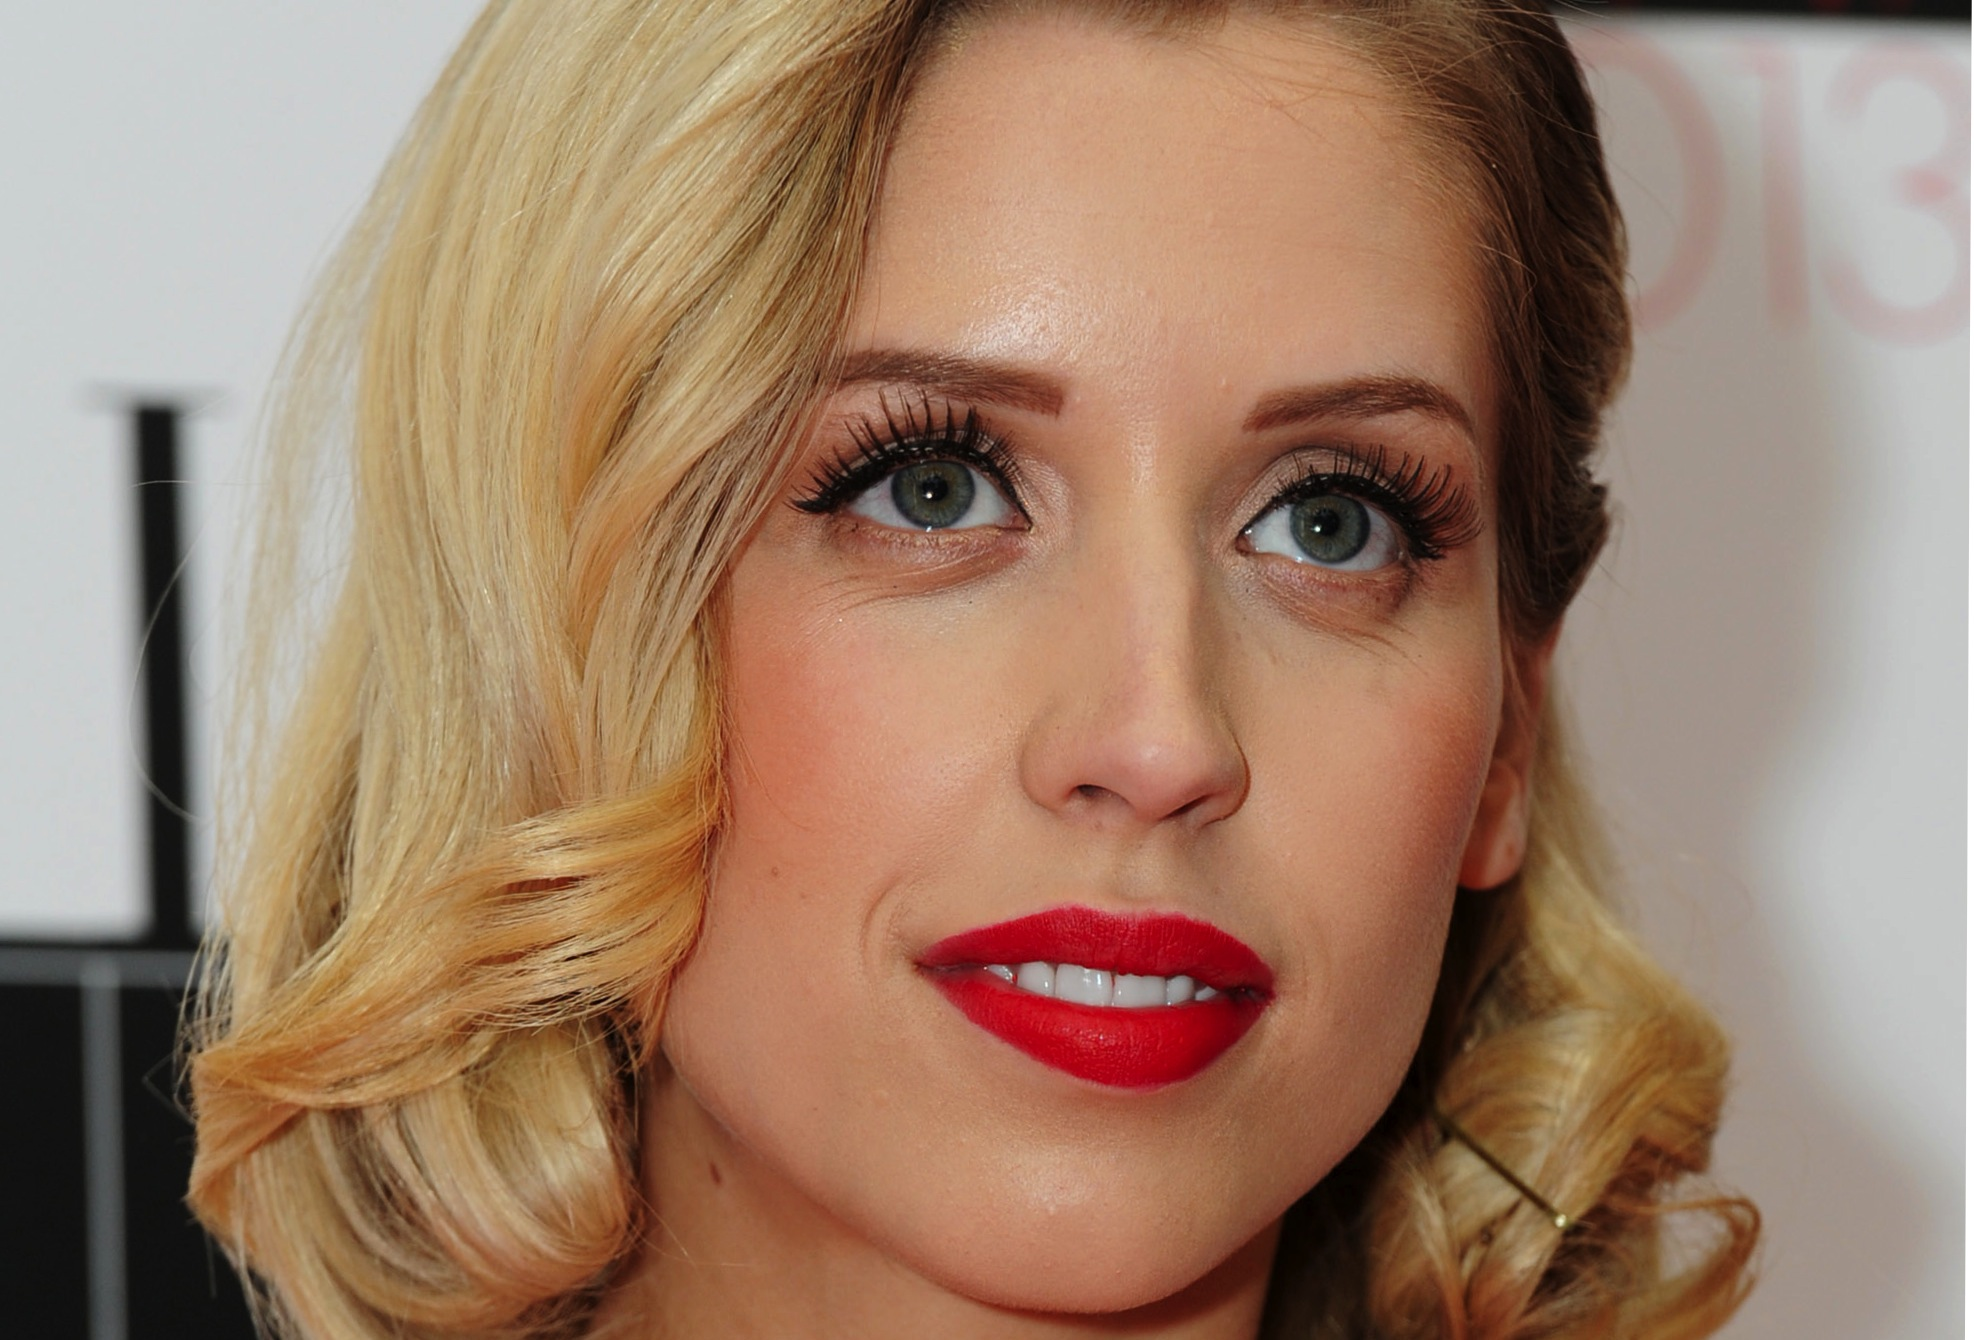 ICloud Peaches Geldof naked (55 photo), Topless, Fappening, Boobs, cameltoe 2020